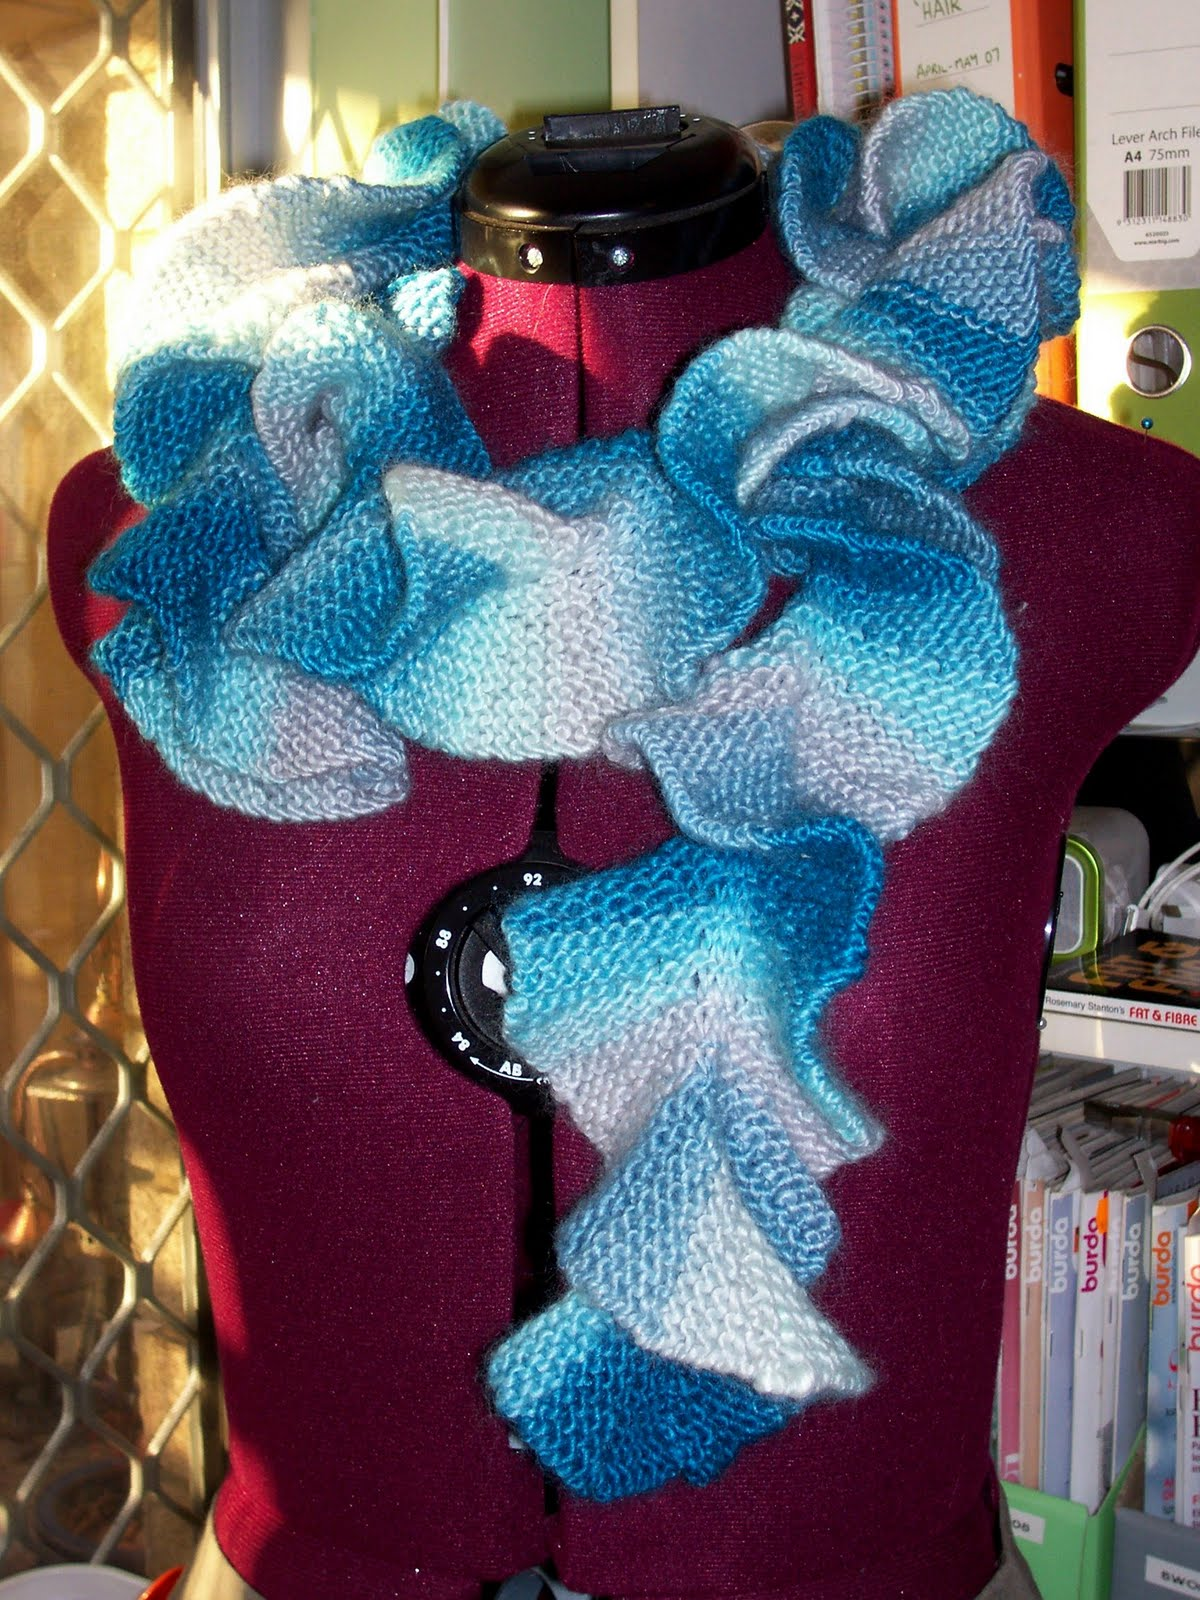 Josieloves2sew Spiral Scarf Another Knitting Project